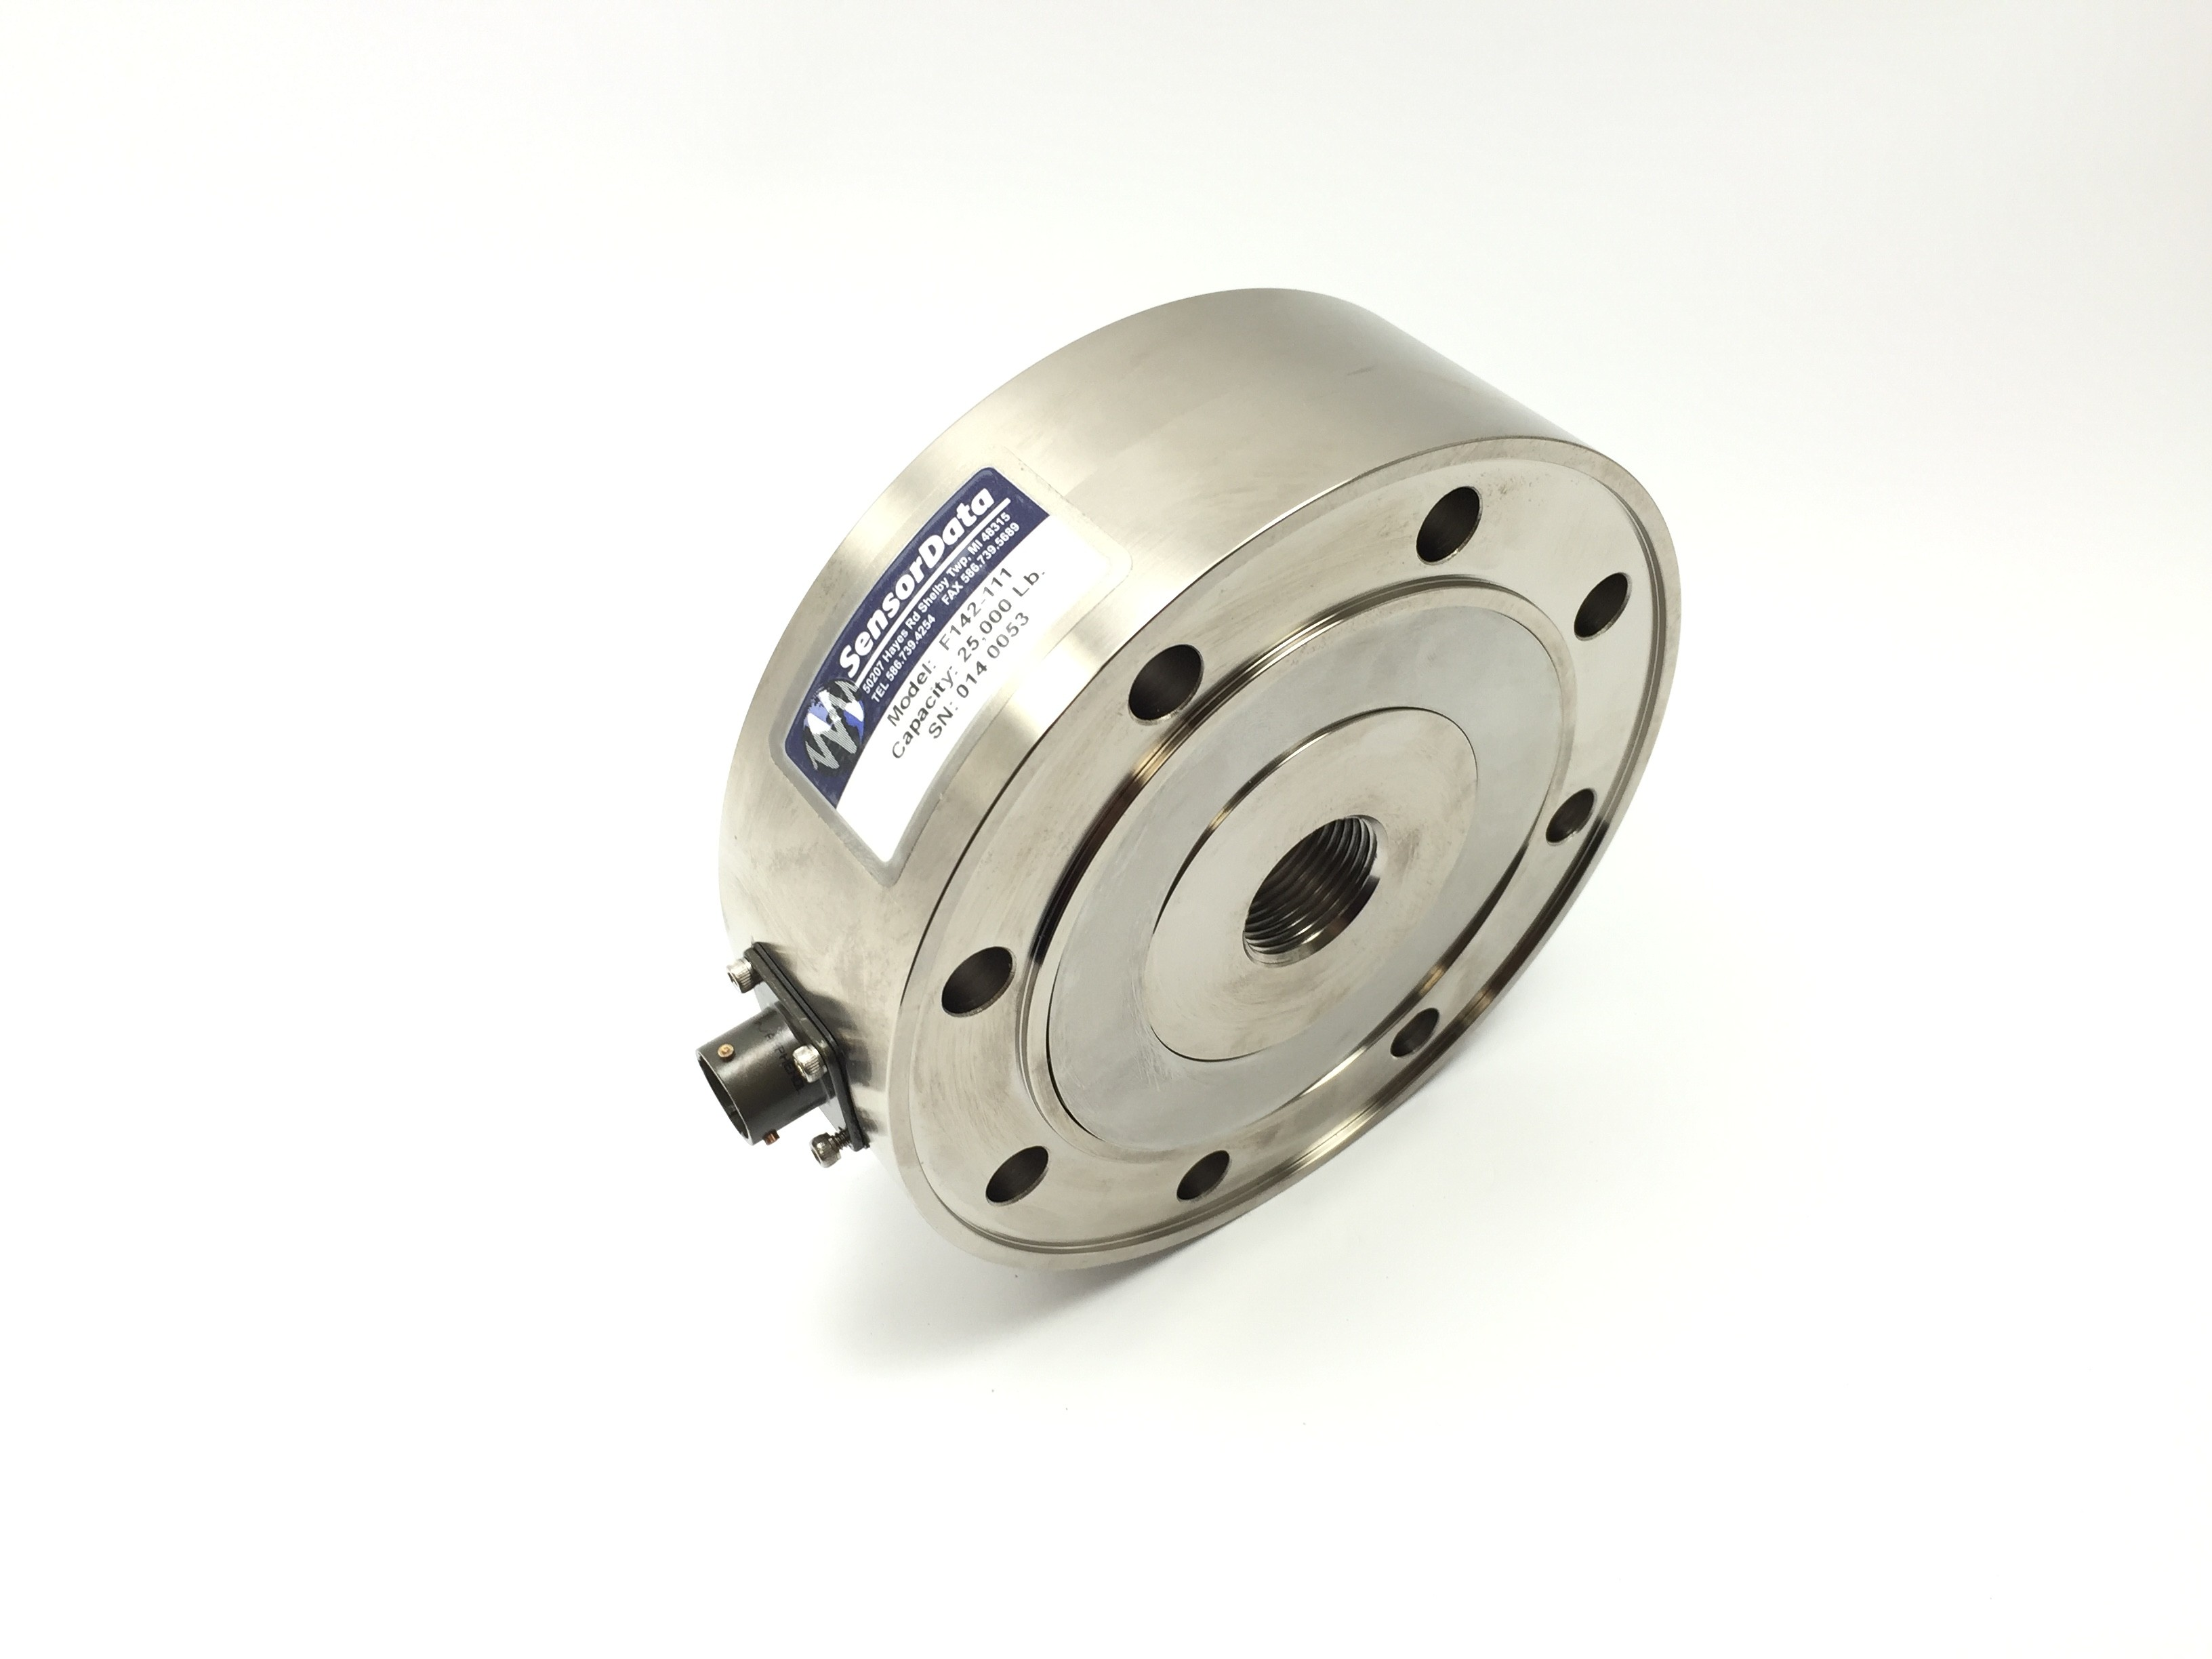 Fatigue Rated Low Profile Universal Shear Web Load Cell